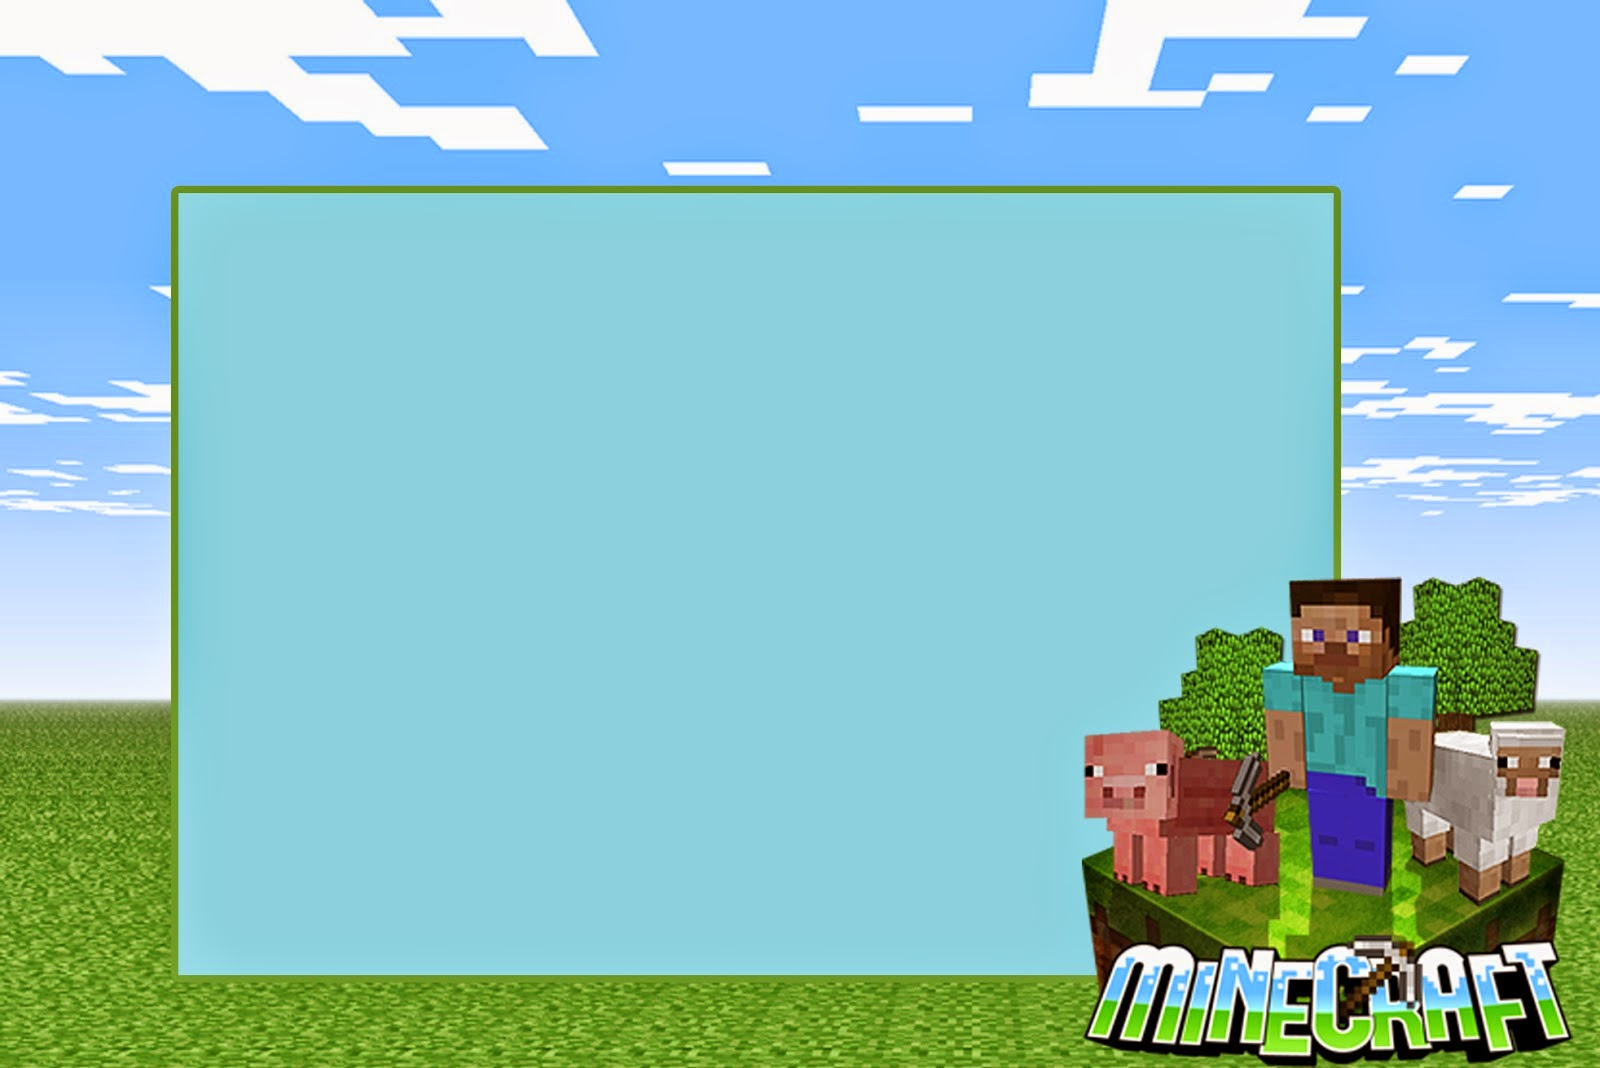 Printable Minecraft Invitations as good invitation example